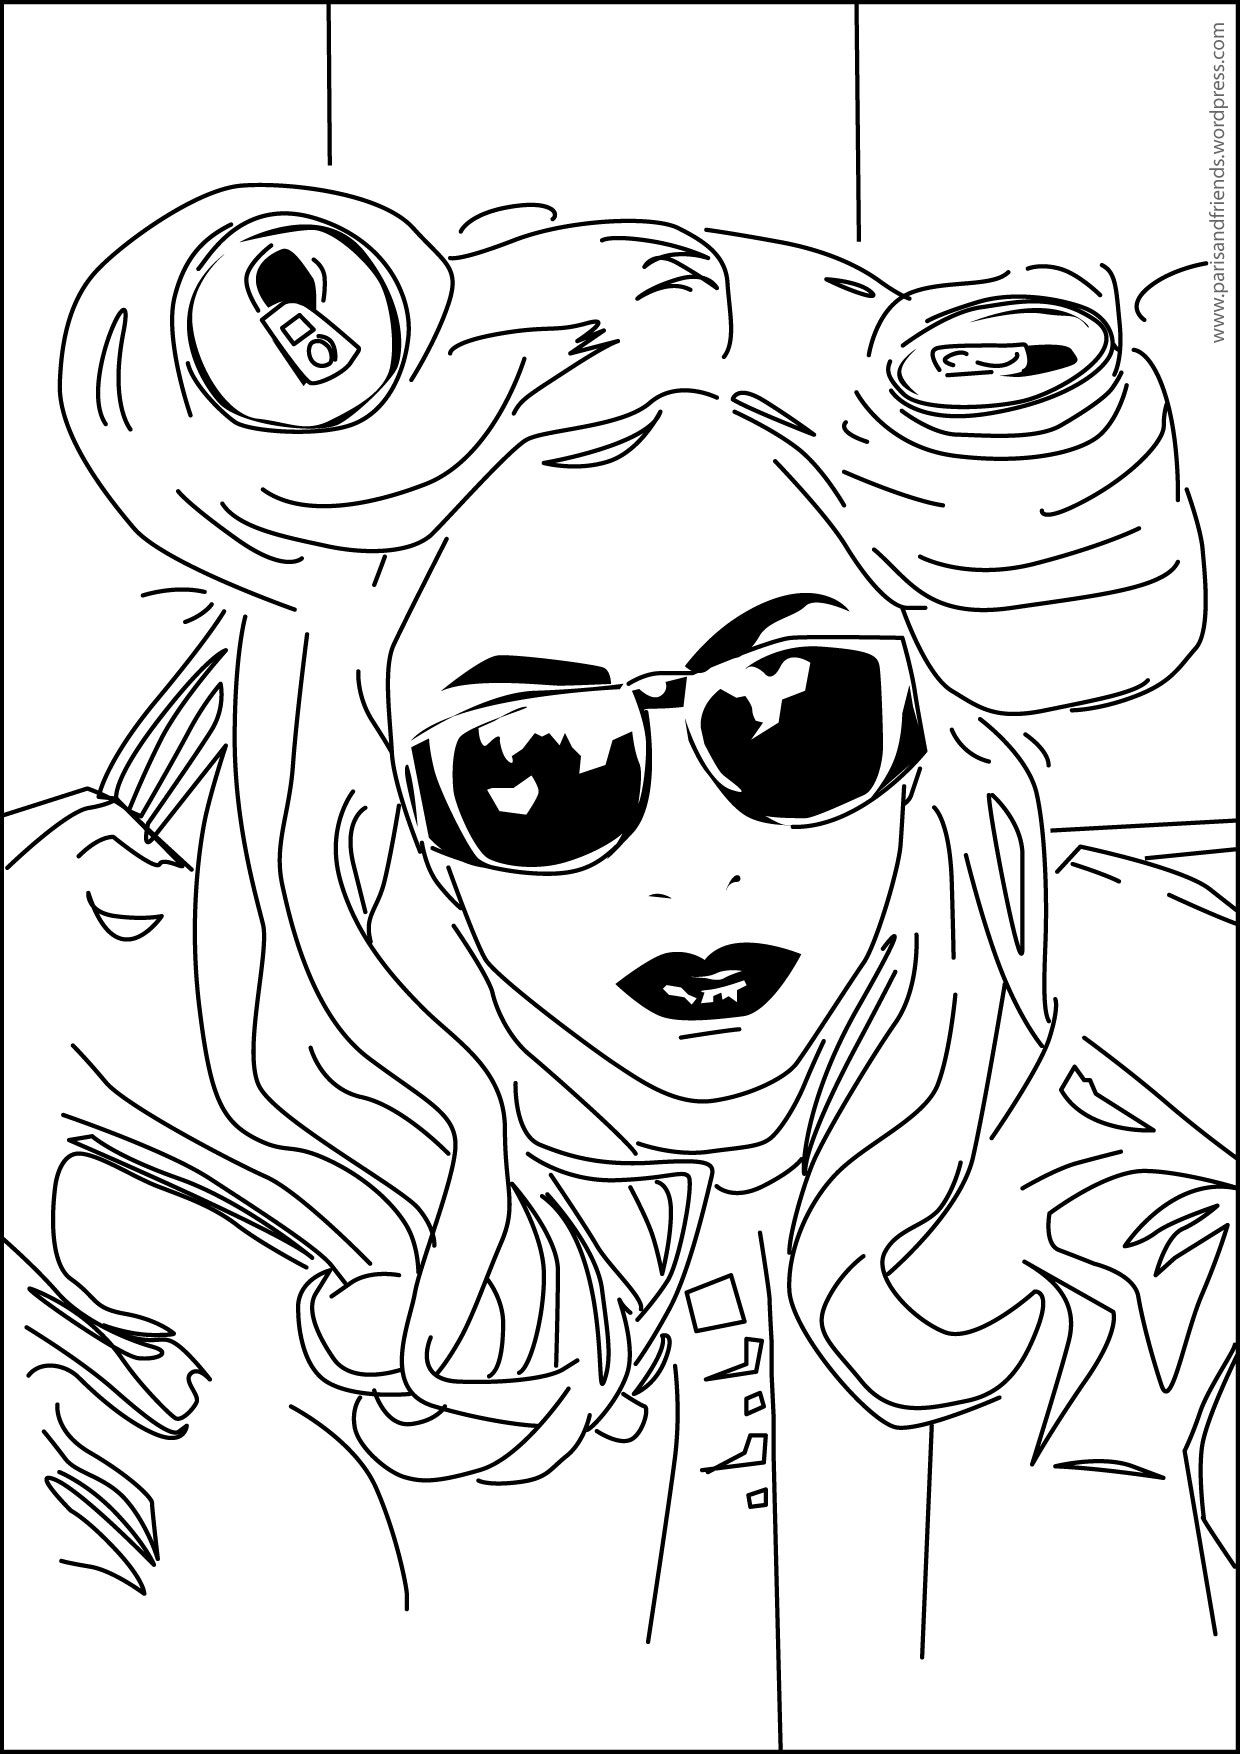 Album Lady Gaga coloring pages | Color Printing|Sonic coloring ...